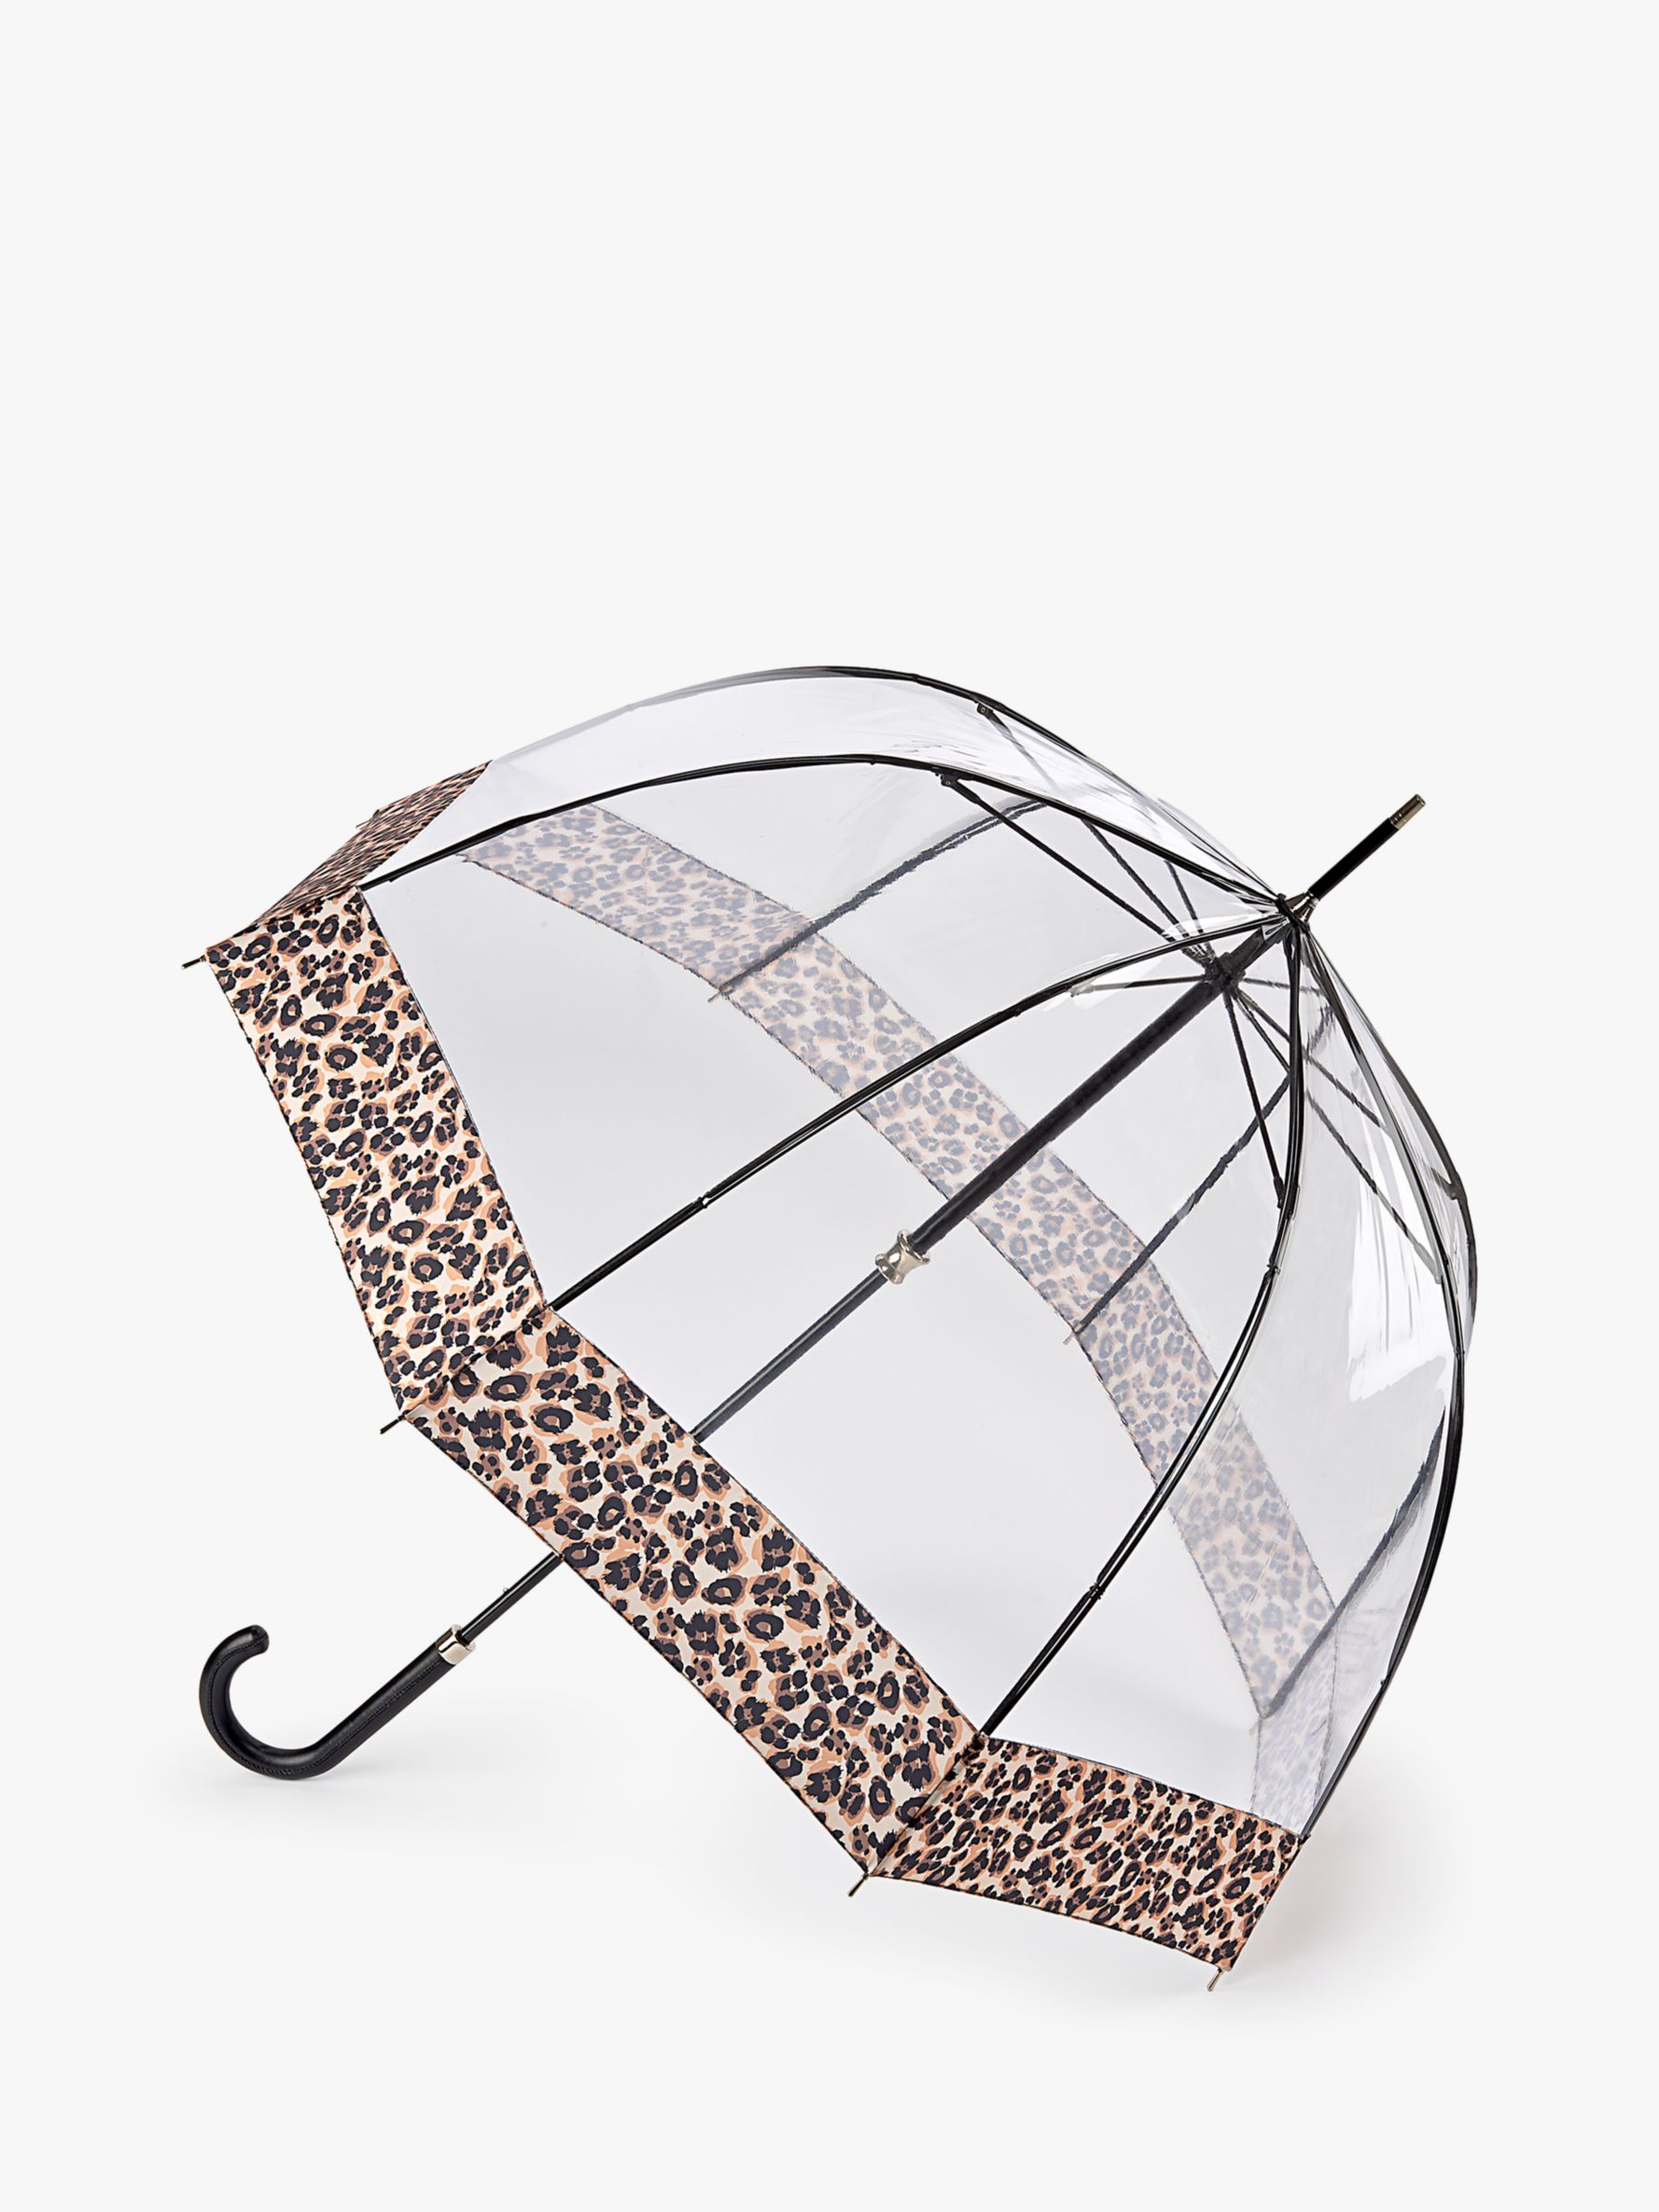 Fulton Fulton Natural Leopard Luxe Birdcage Umbrella, Clear/Multi